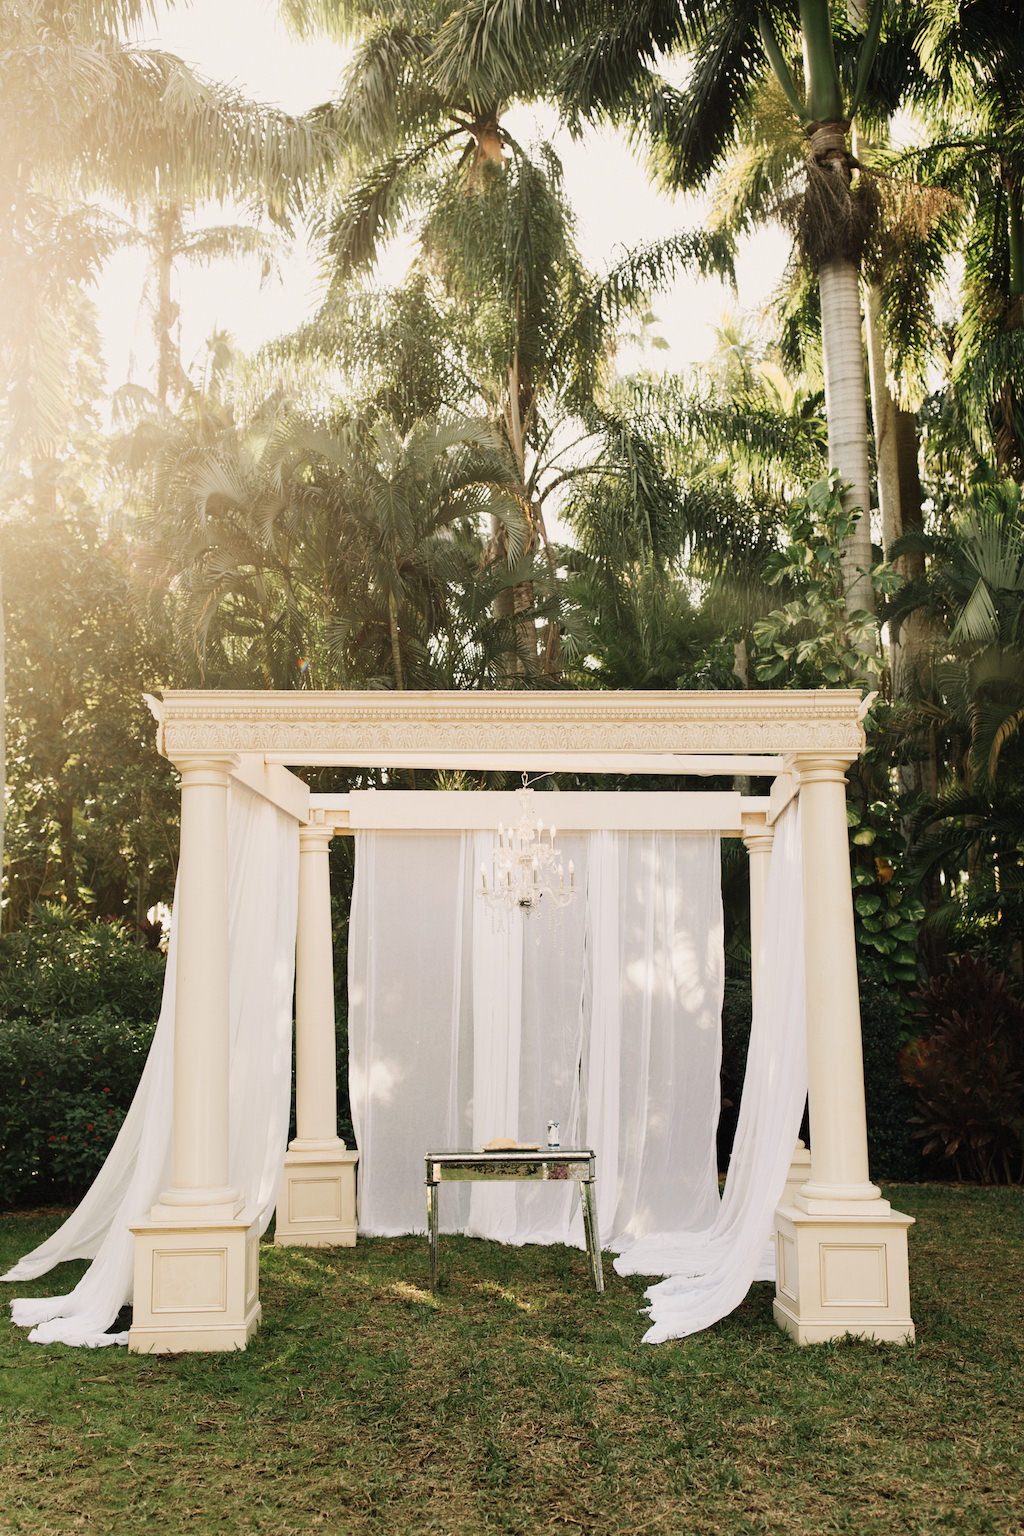 Elegant Outdoor Ivory Wedding Draped Ceremony Pillar Arch with White Drapery and Crystal Chandelier   St. Pete Wedding Venue The Sunken Gardens